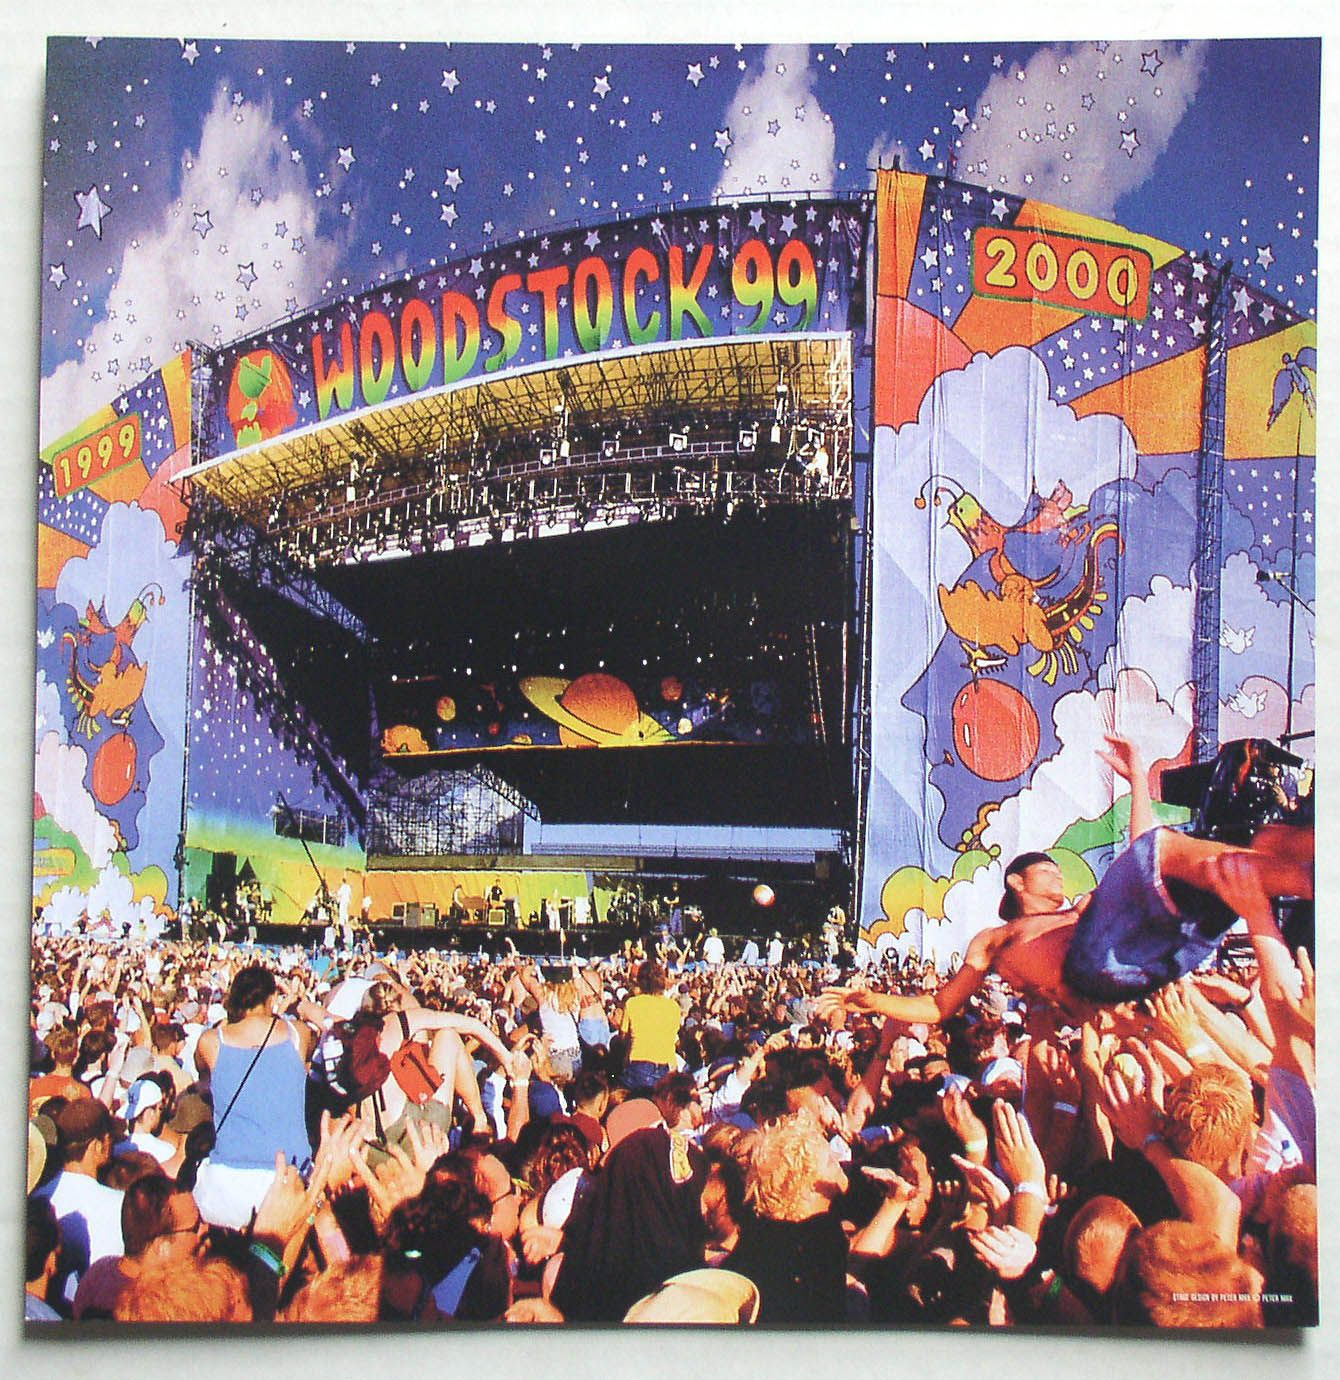 woodstock 99 pictures | Woodstock 99 » Tag Archive ...